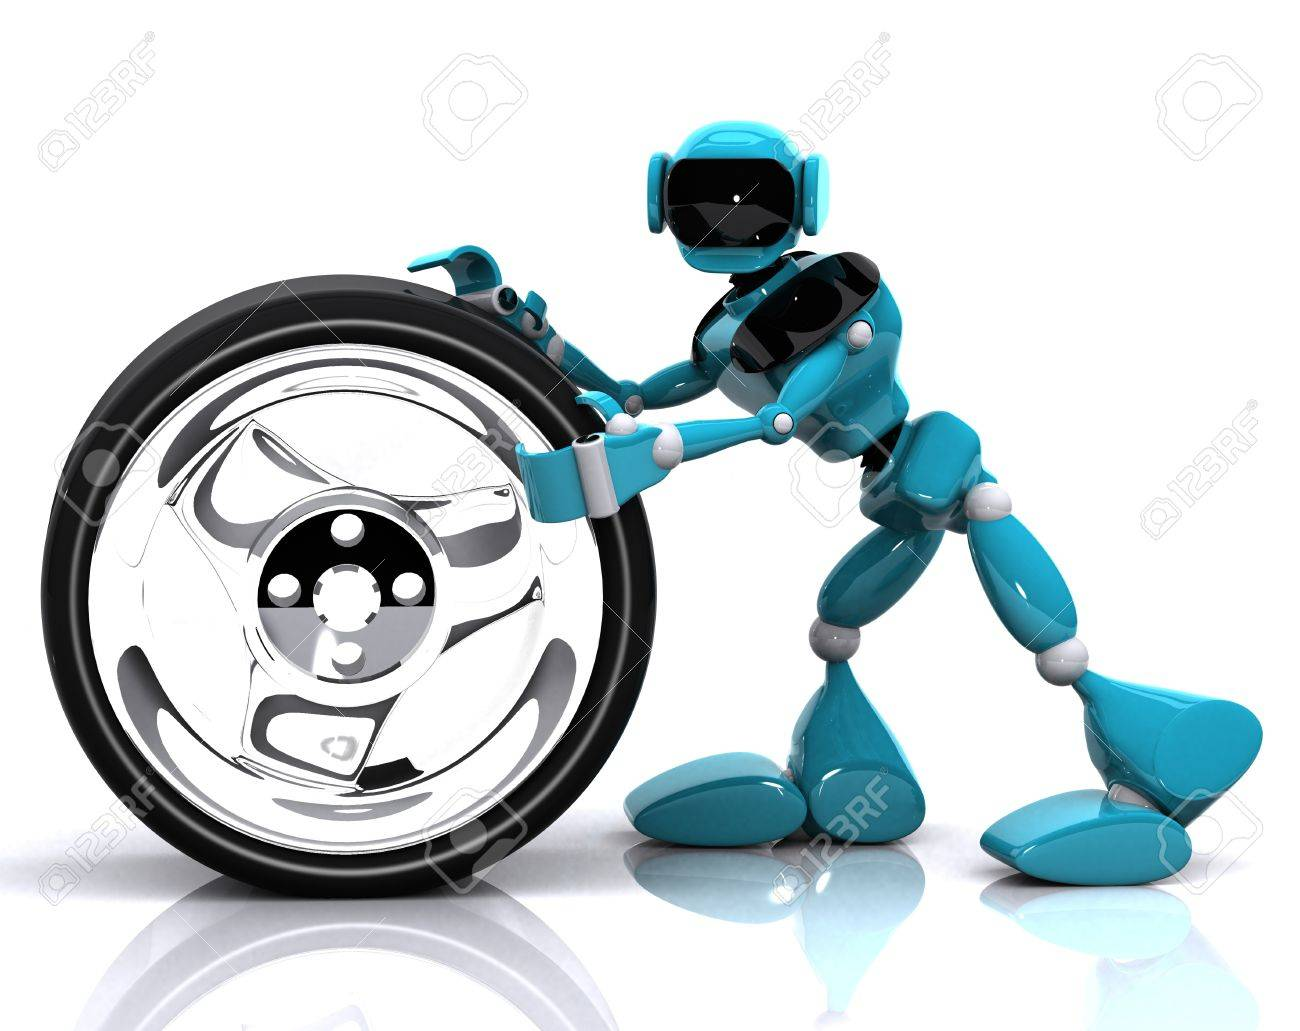 3d illustration of a blue robot and wheel on white background Stock Illustration - 16108503